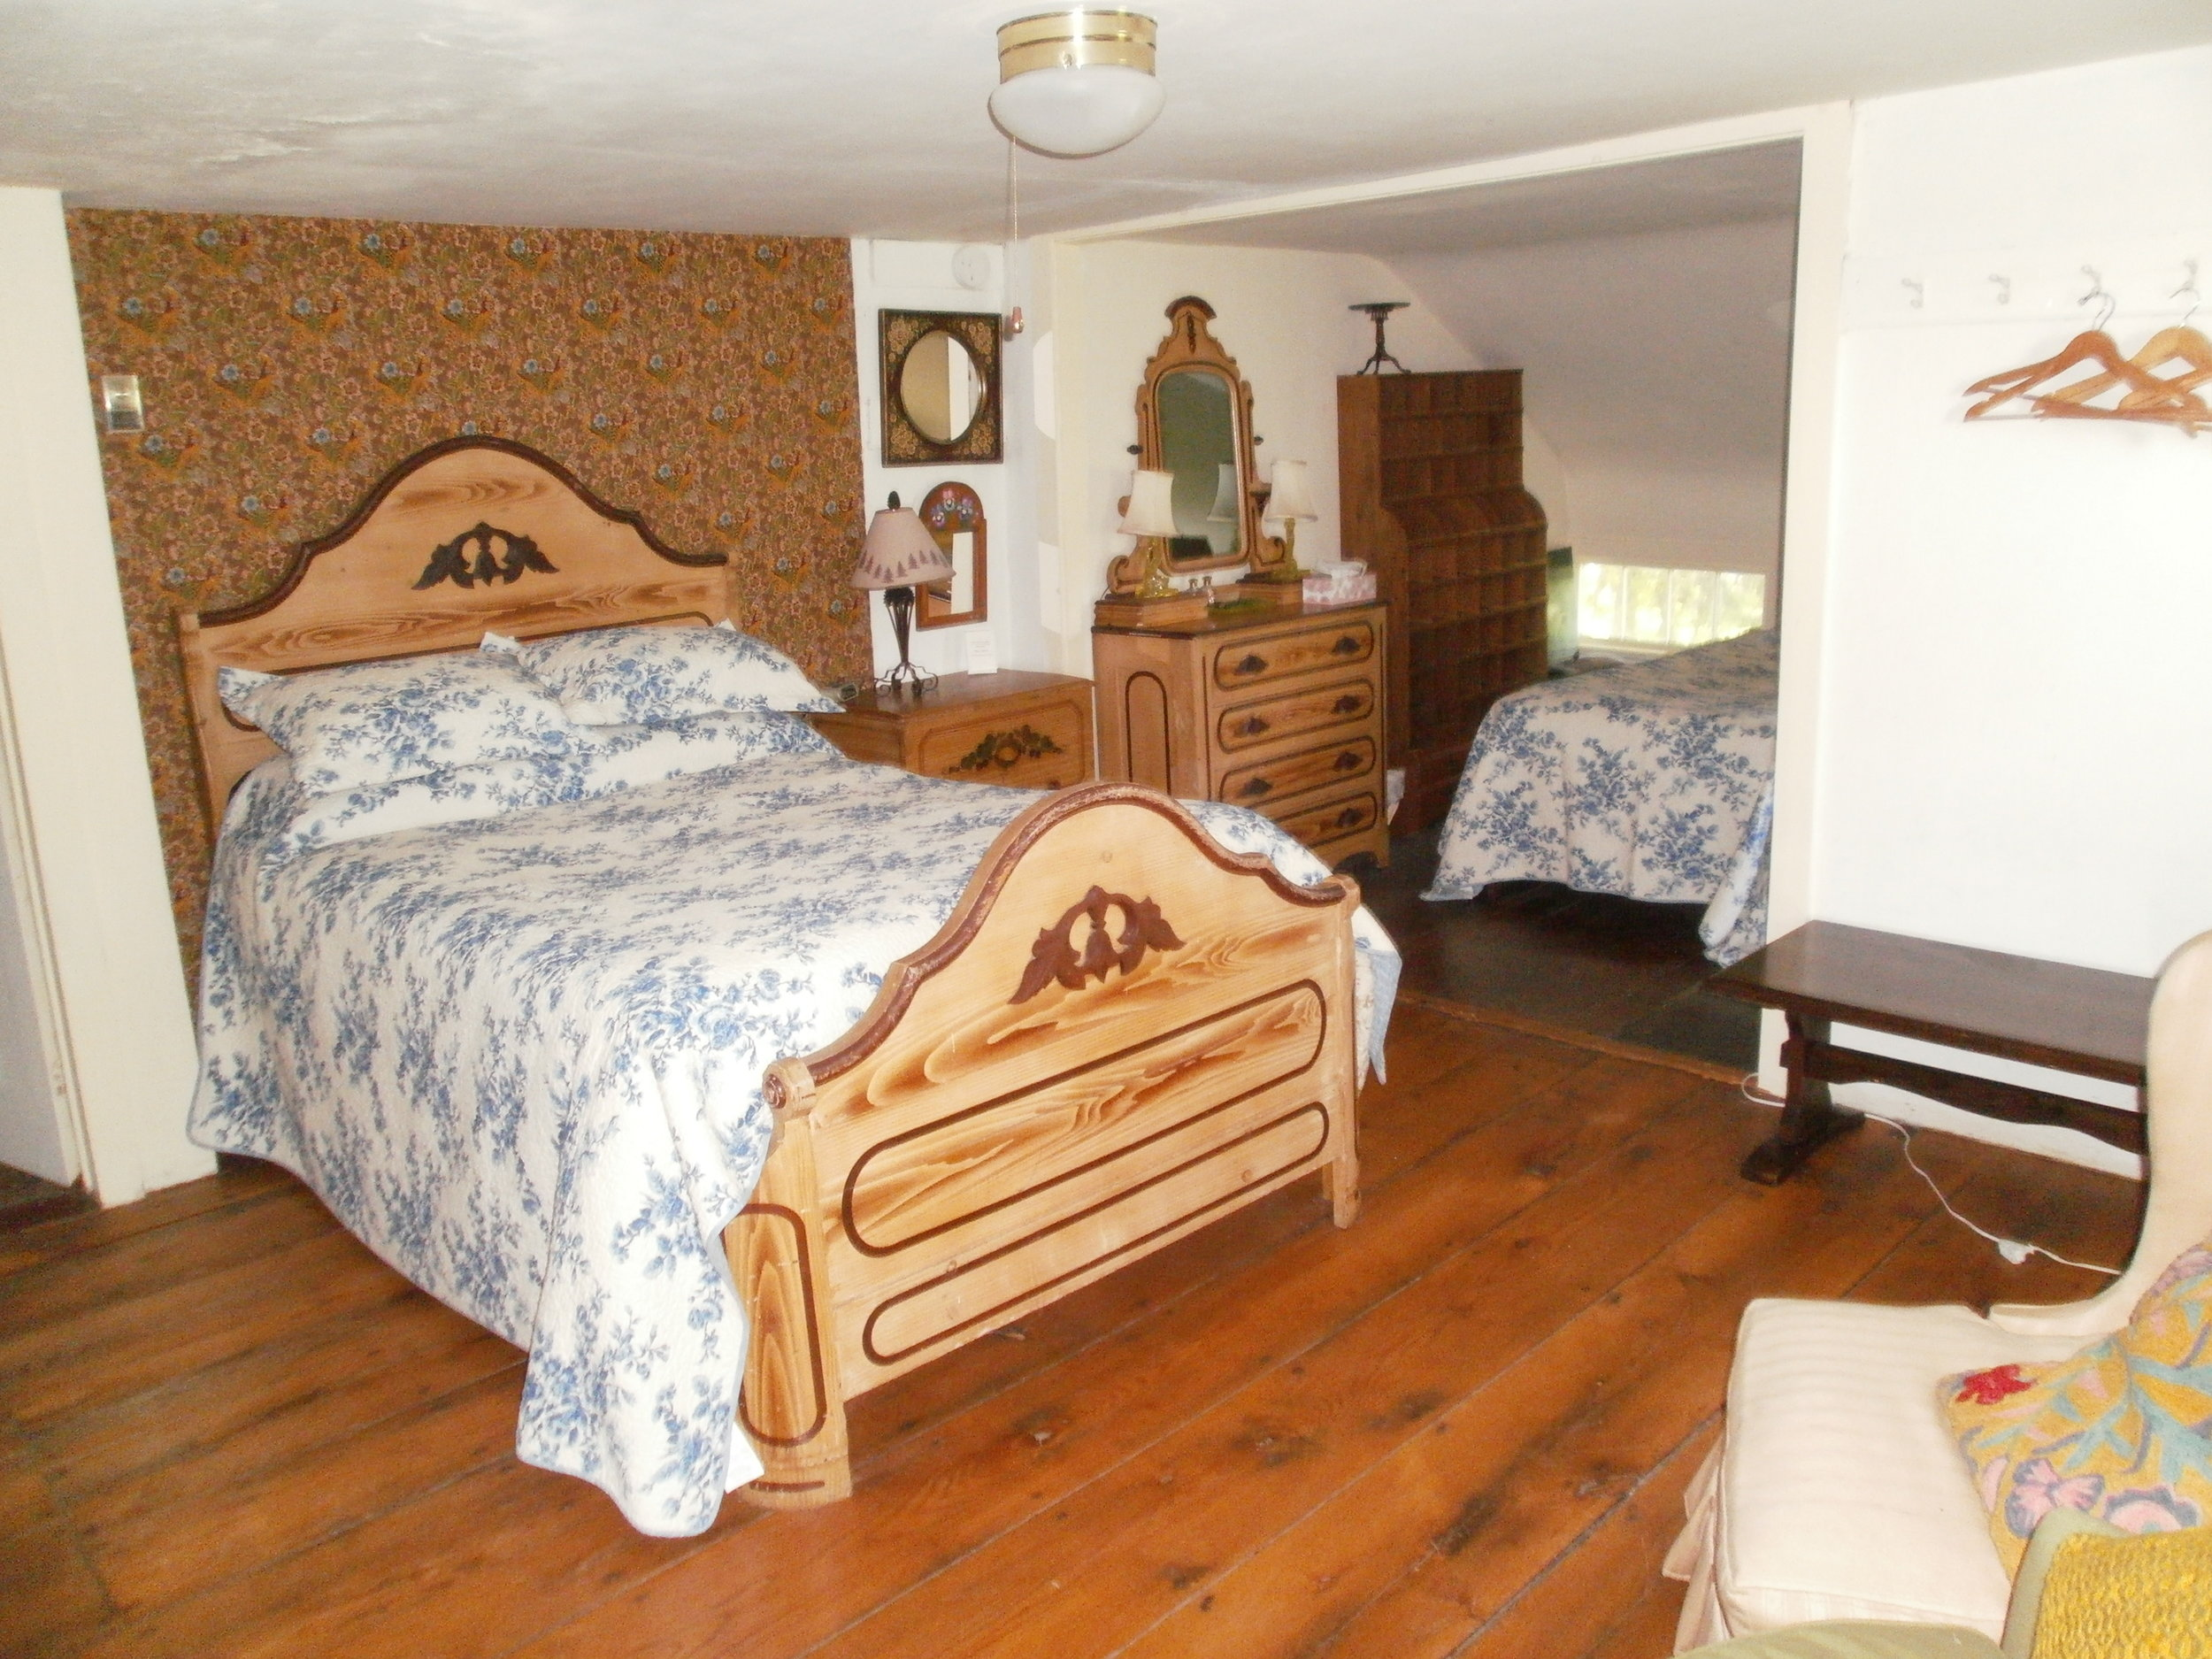 One of these rooms has a double bed and two twin beds, making it ideal for a family to share.